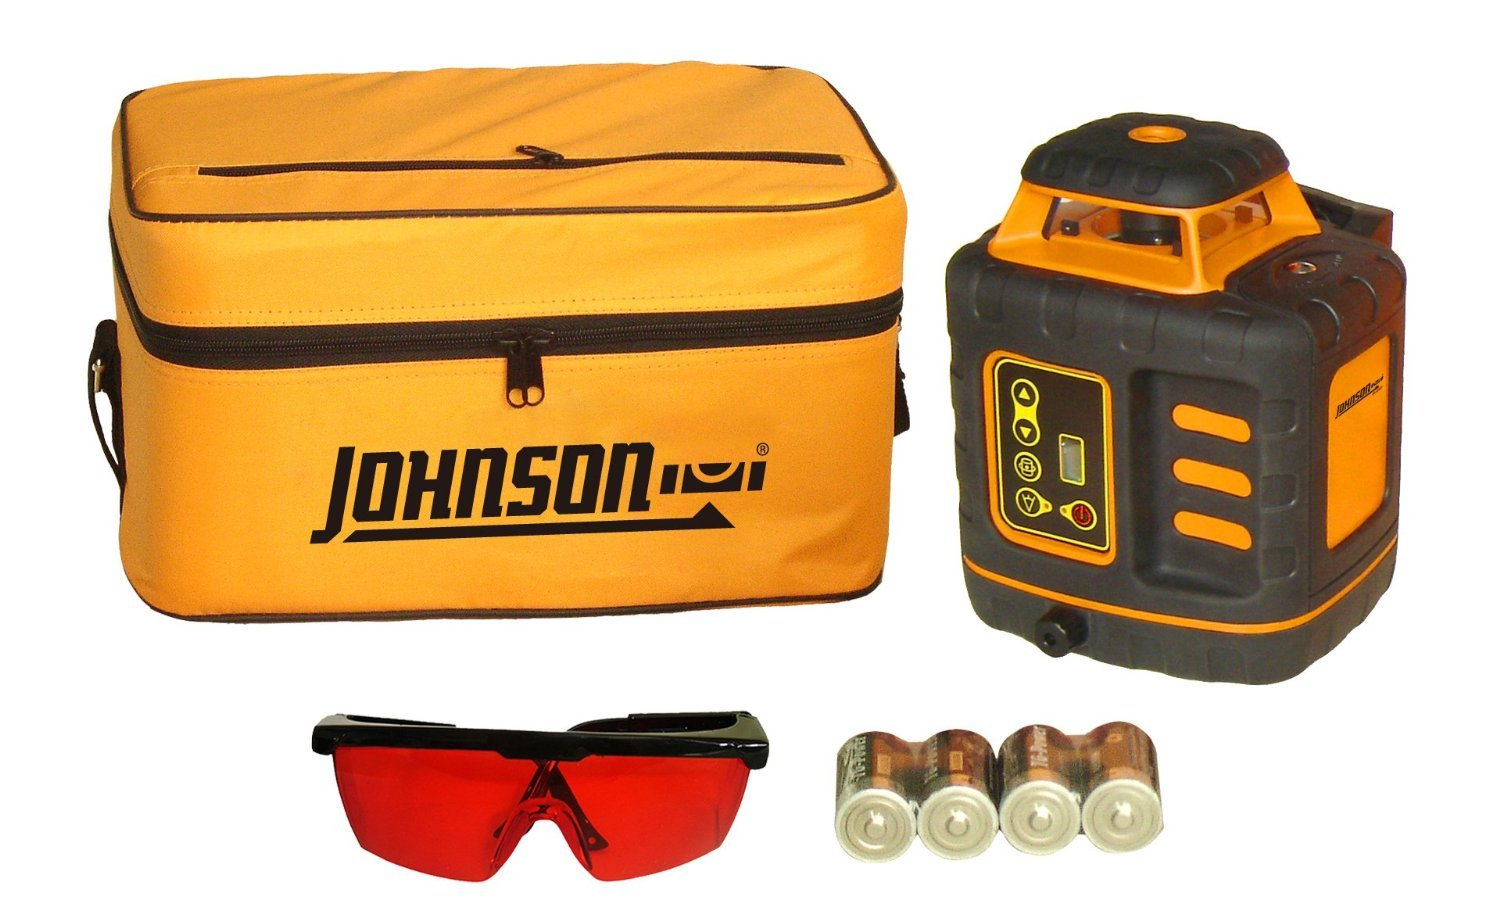 Johnson Level and Tool 40-6527 Self-Leveling Rotary Laser Level